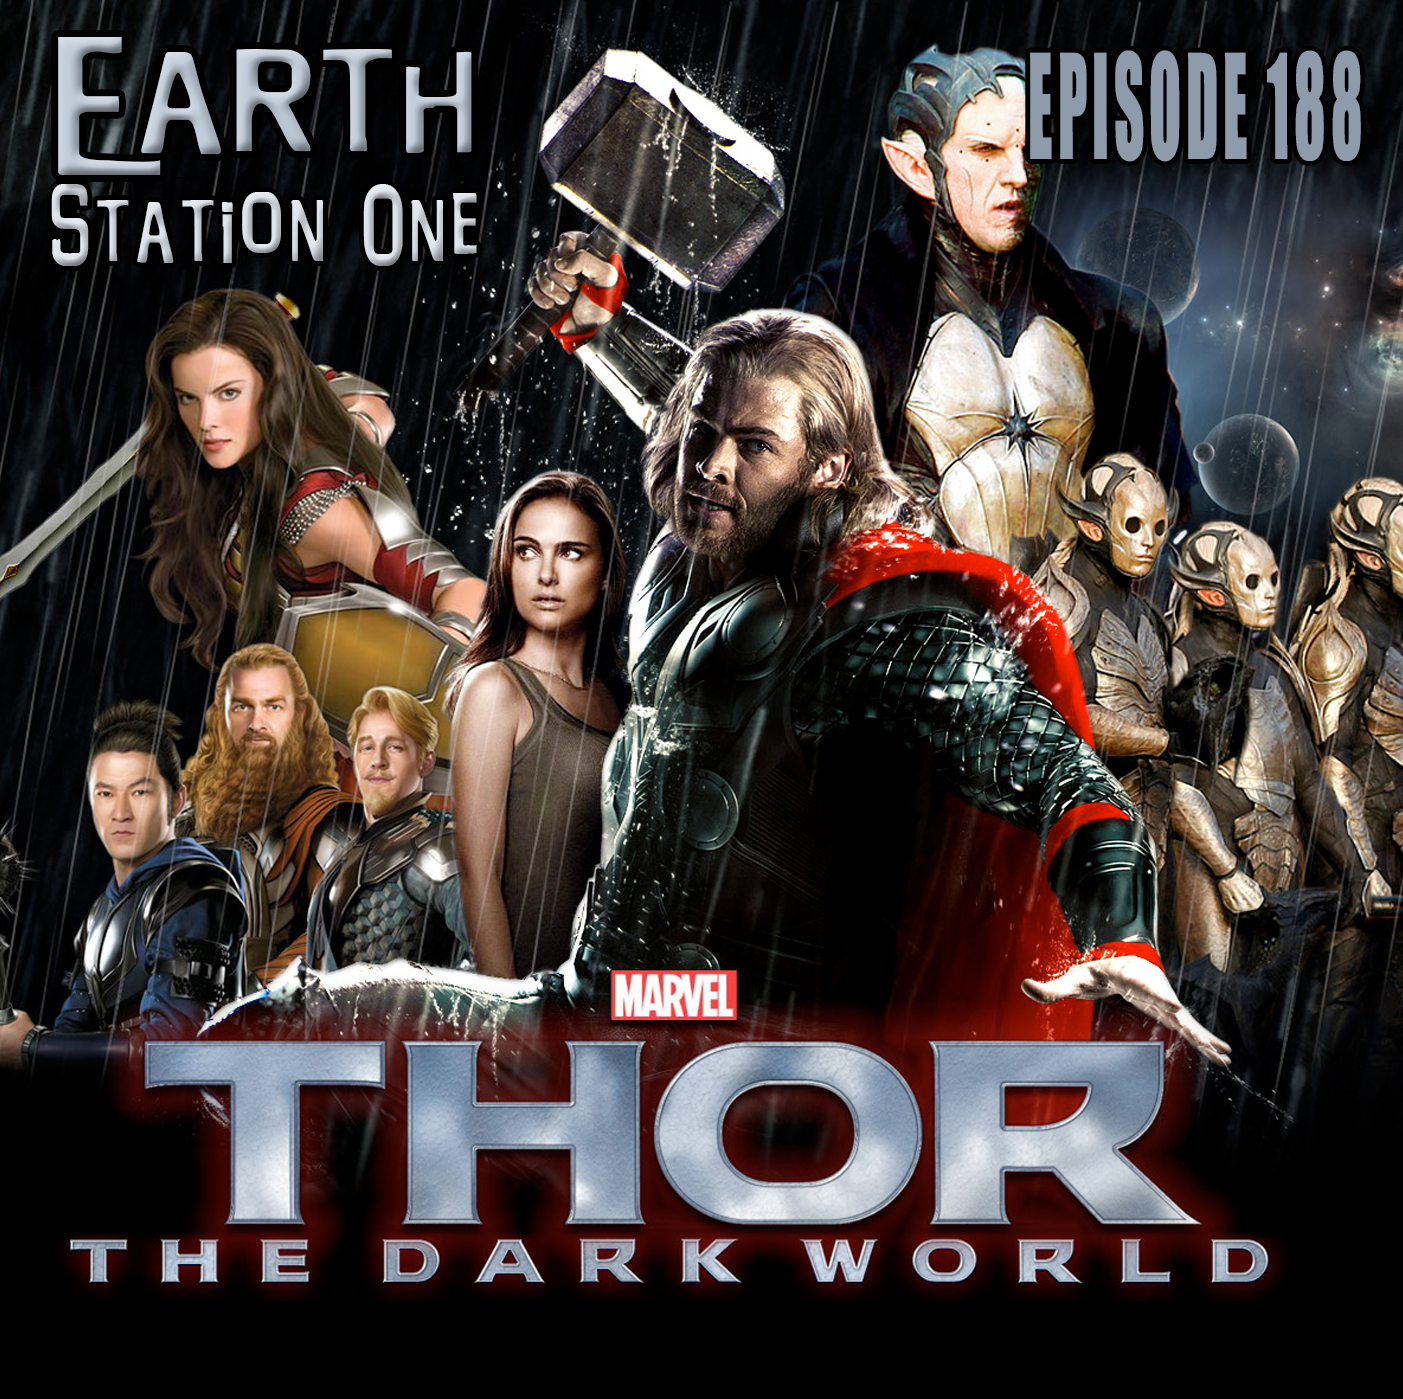 Earth Station One Ep 188